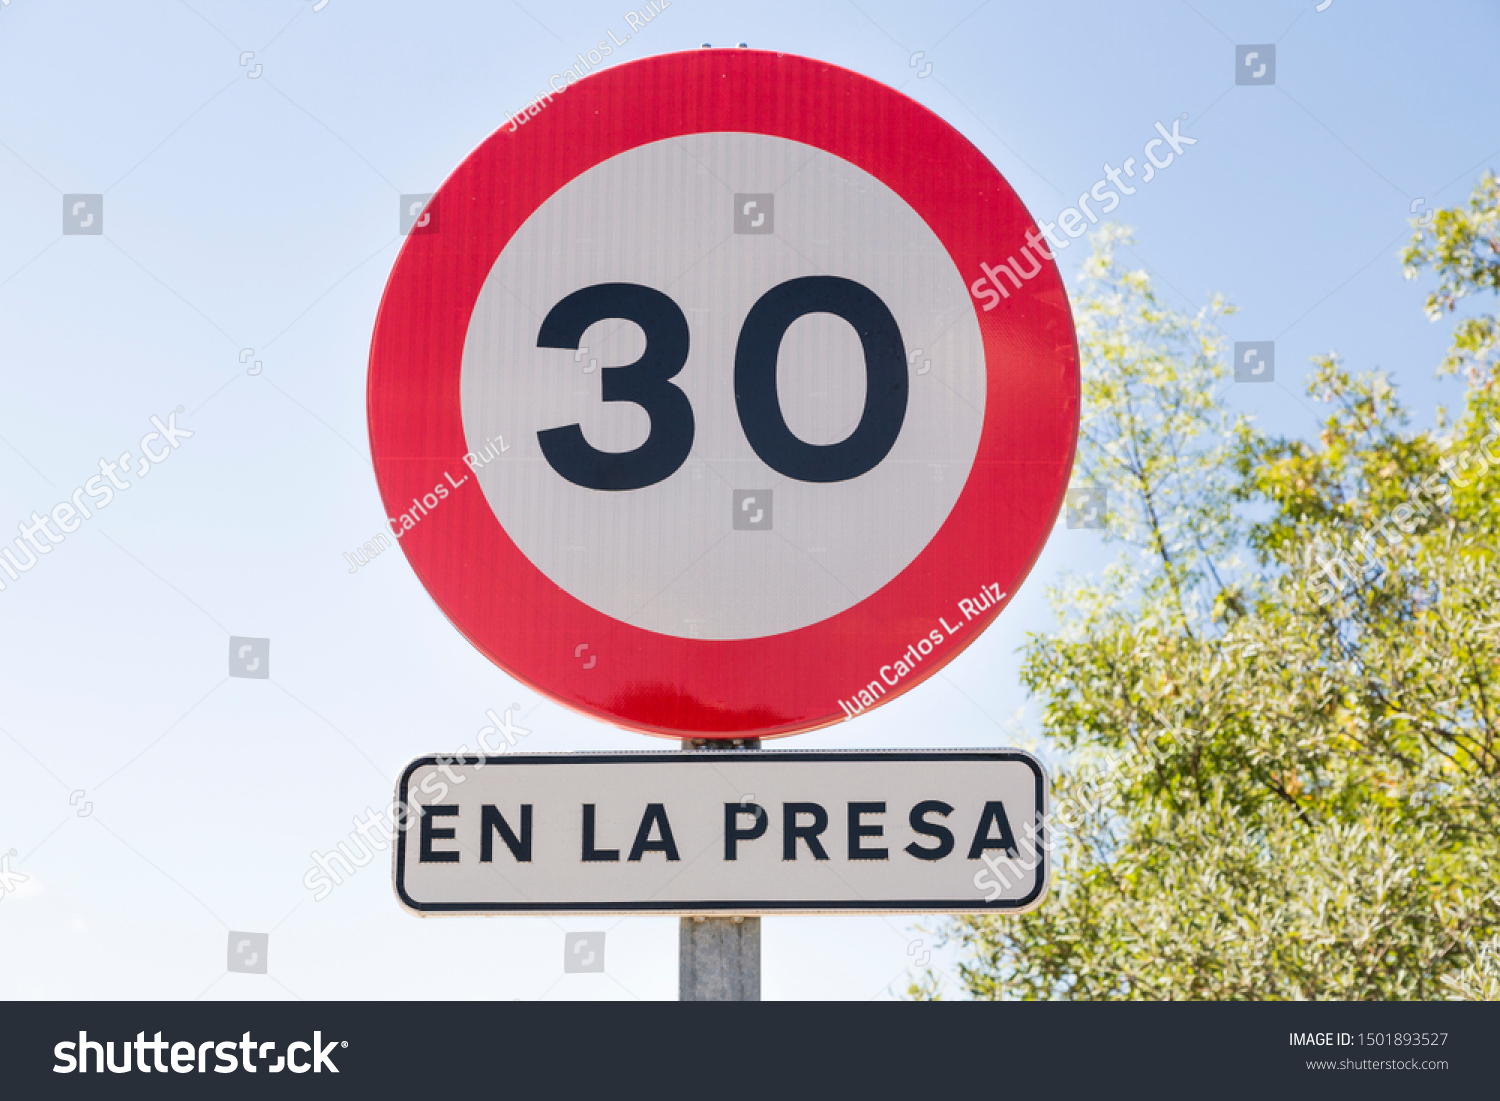 Legal Speed Limit back to 120km/h